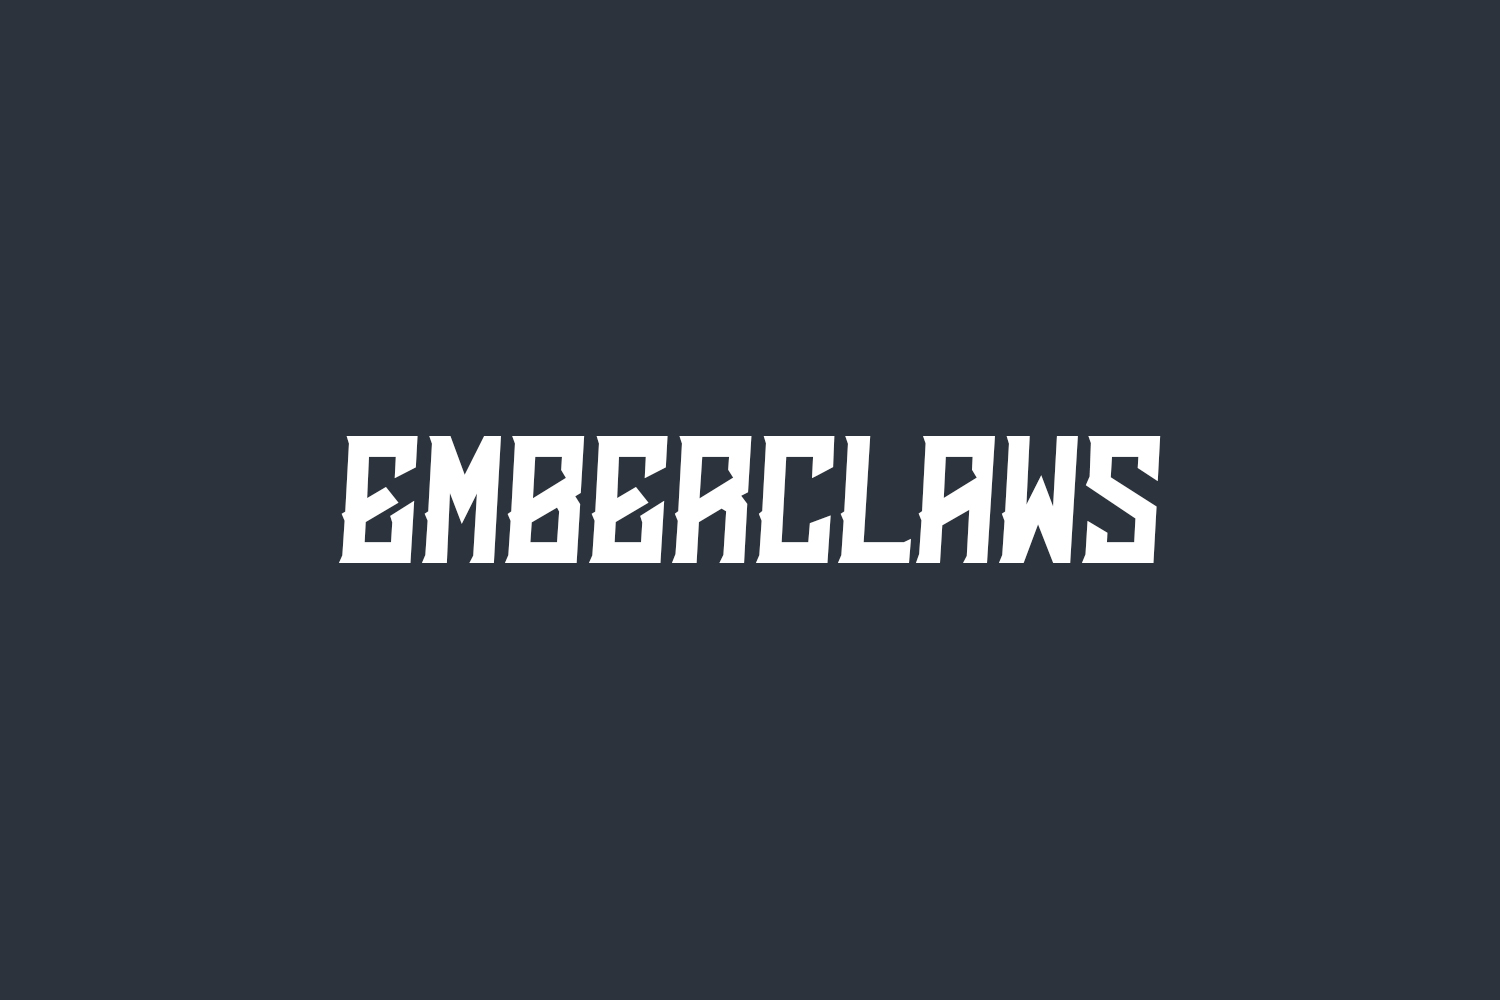 Emberclaws Free Font